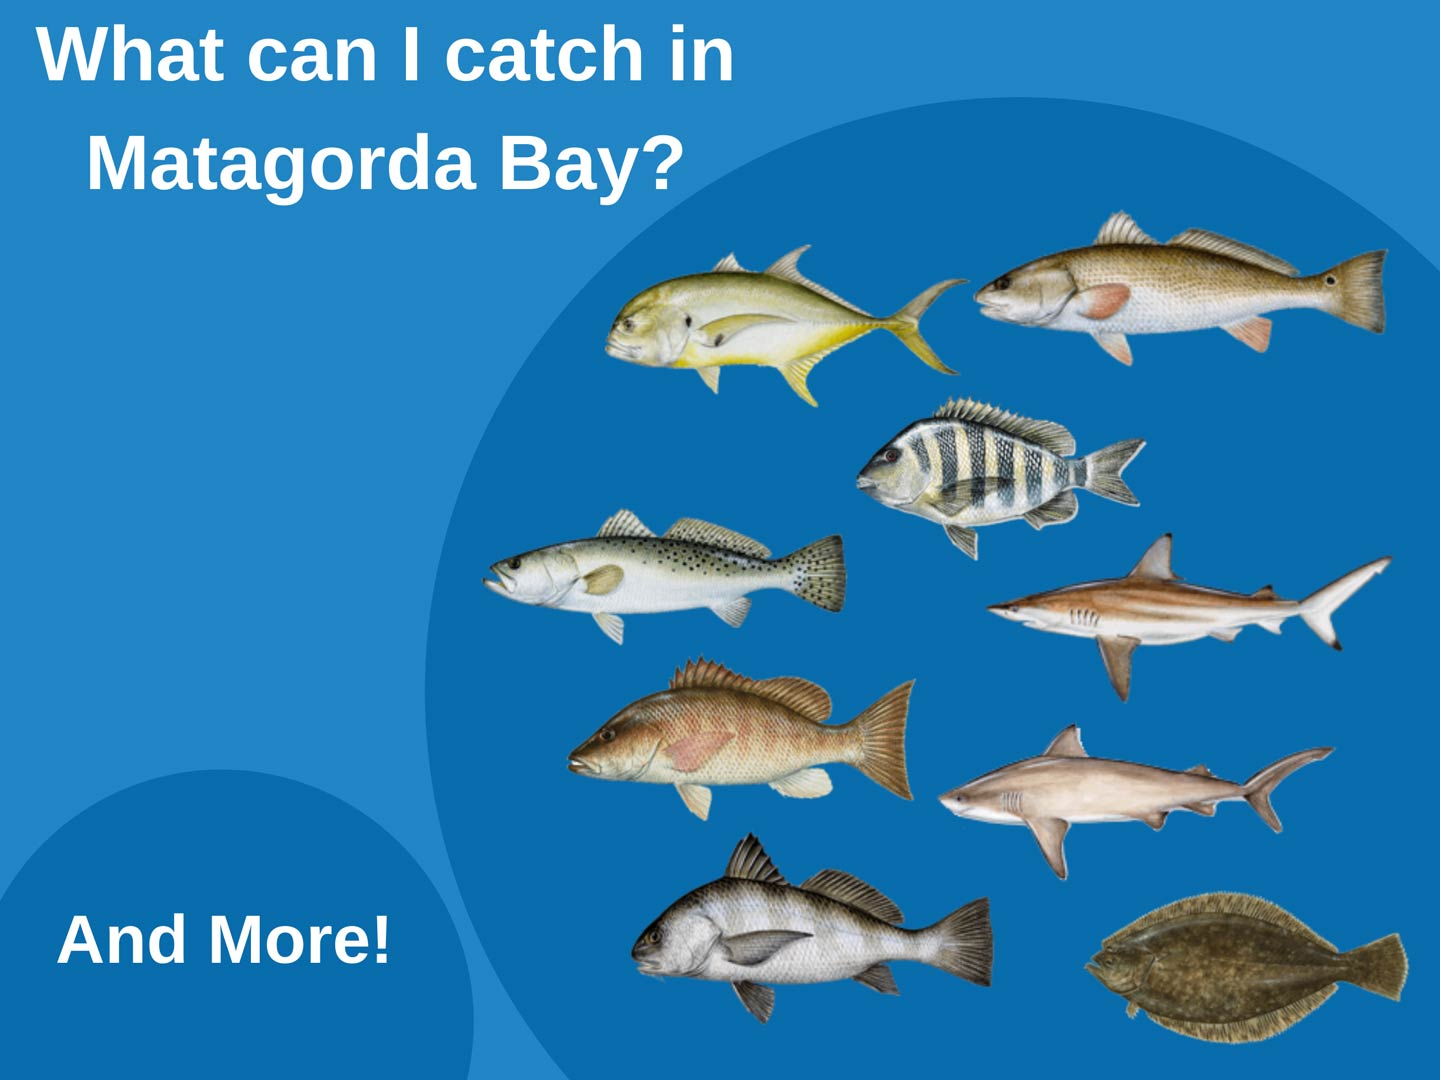 An infographic showing the top fish species to catch in Matagorda Bay, including Sheepshead, Redfish, Black Drum, Speckled Trout, and Flounder